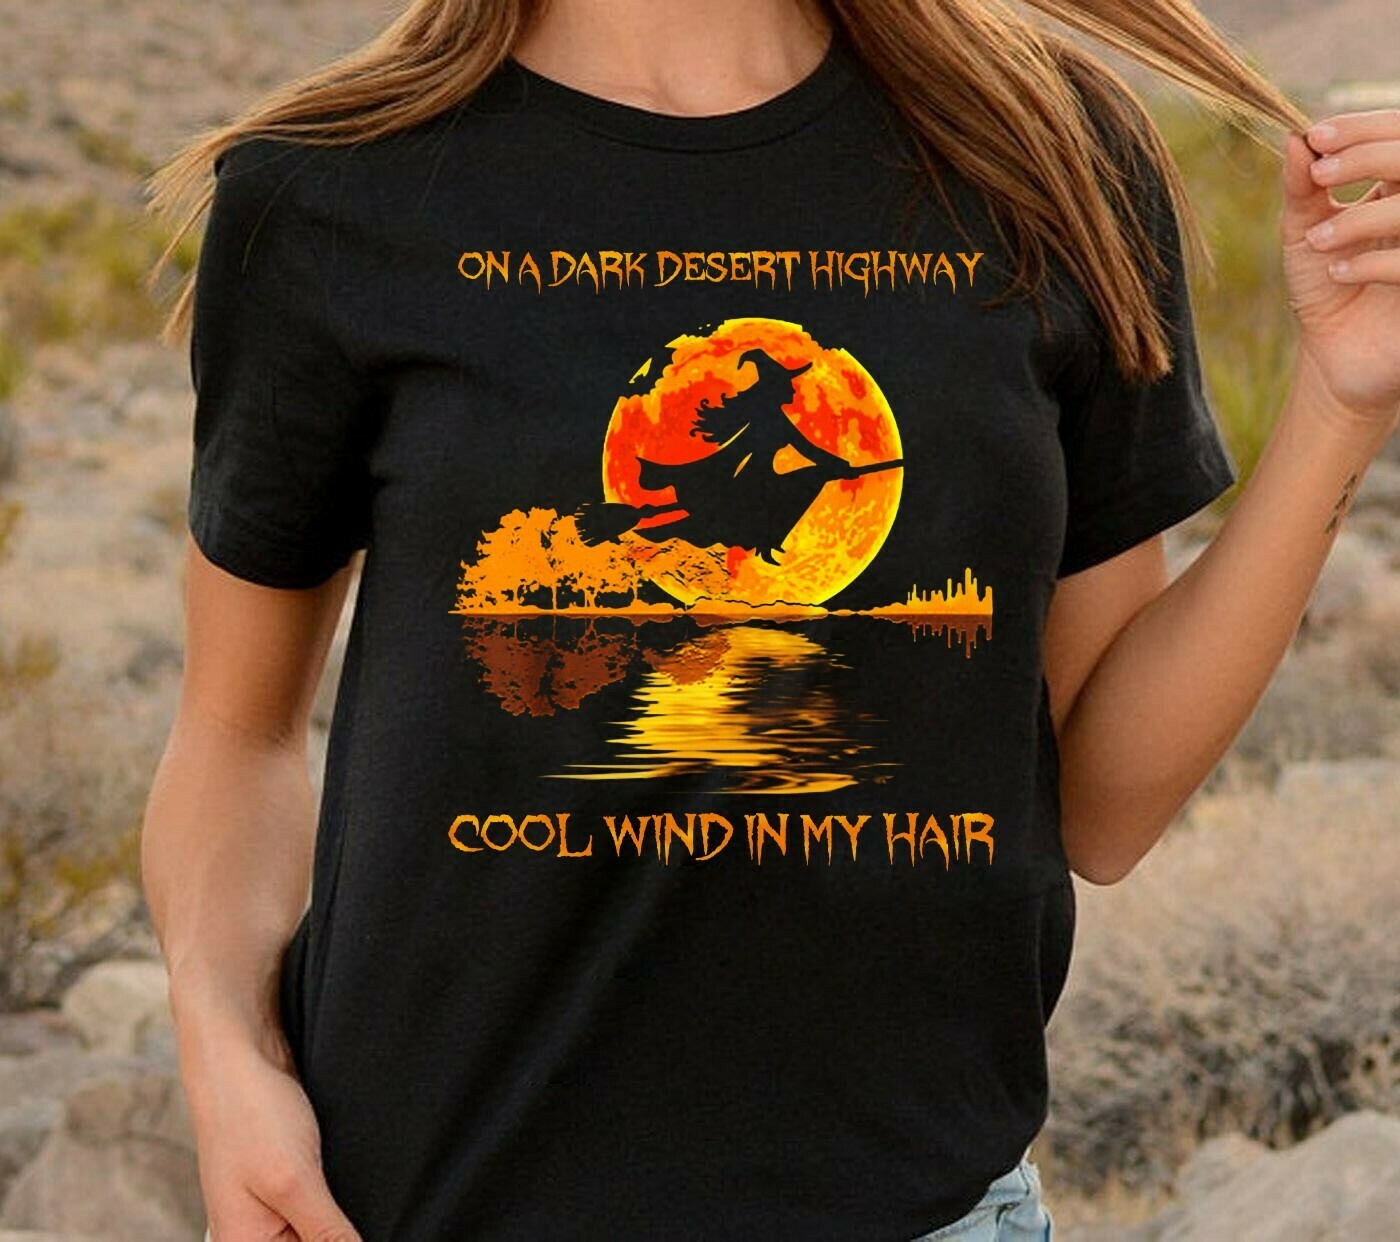 Witch Guitar Lake Shadow On A Dark Desert Highway Cool Wind In My Hair Bad Girls In The Moonlight Gifts For Love Grandmalife Mom NanaT-shirt Long Sleeve Sweatshirt Hoodie Jolly Family Gifts